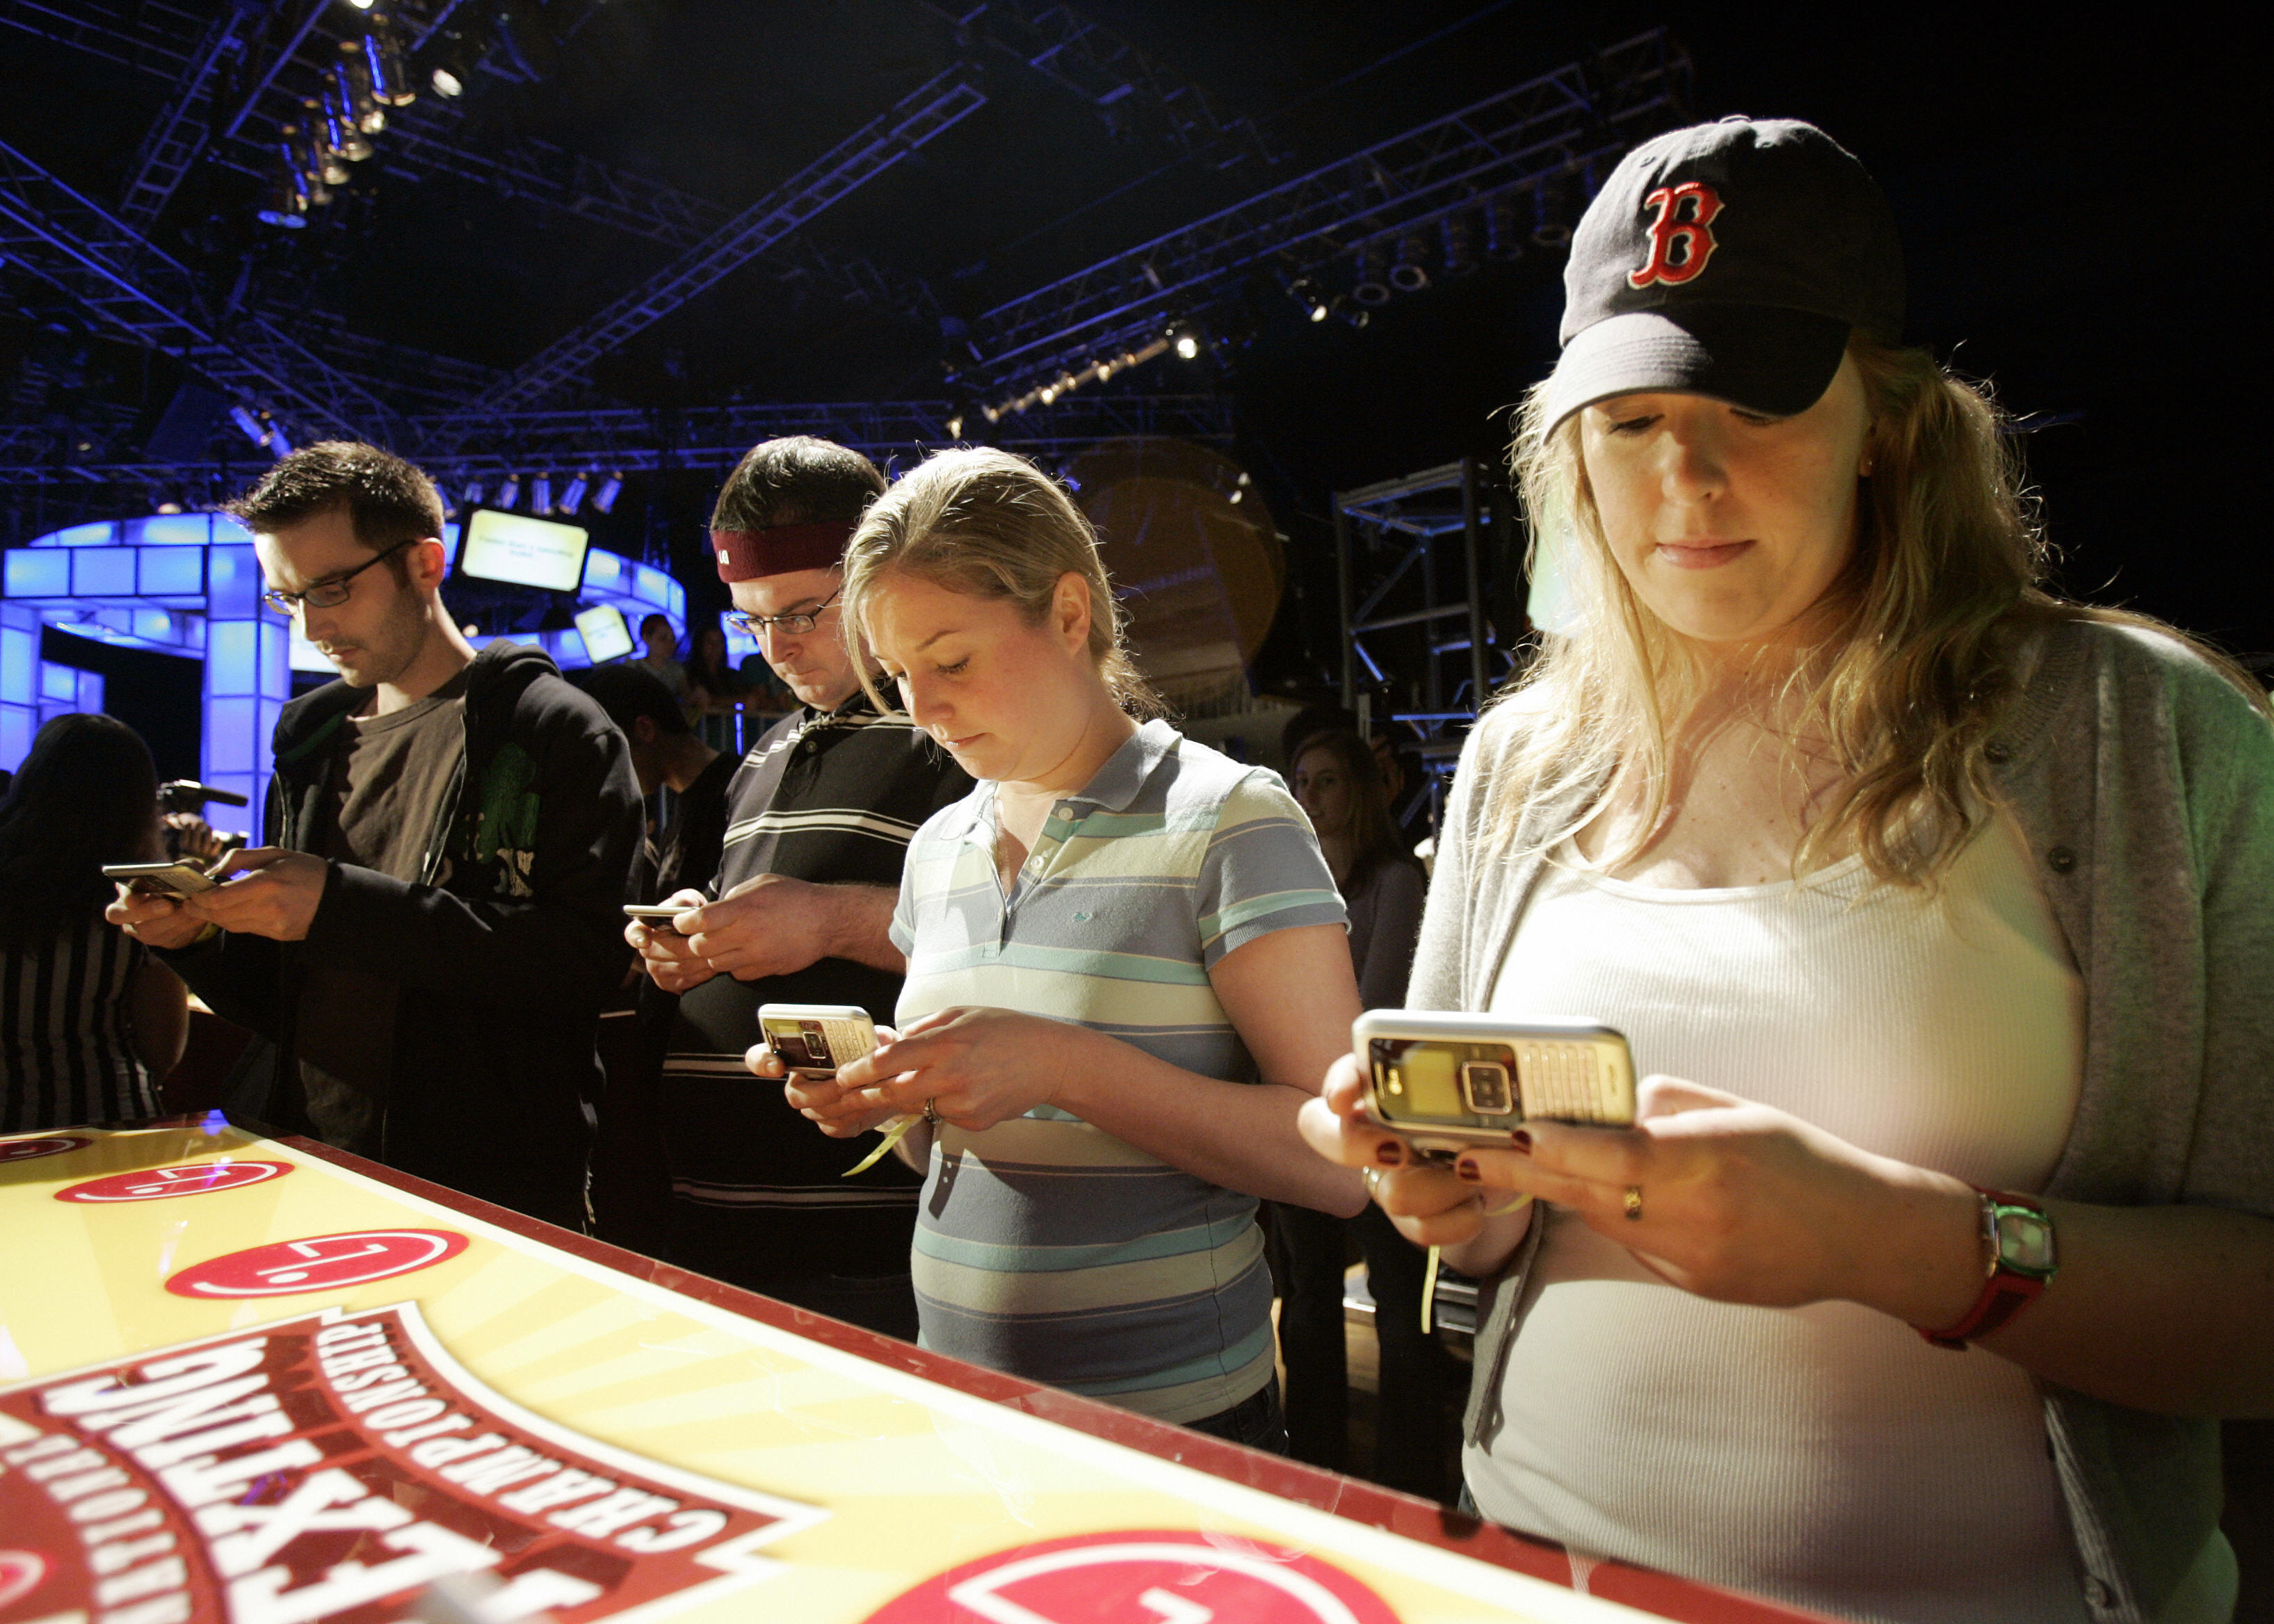 Vanessa LeBlanc (R), Susan Mygatt (2nd R) and others compete in an early round of the LG National Texting Championship, 21 April 2007, at the Roseland Ballroom in New York, sponsored by LG Mobile Phones.